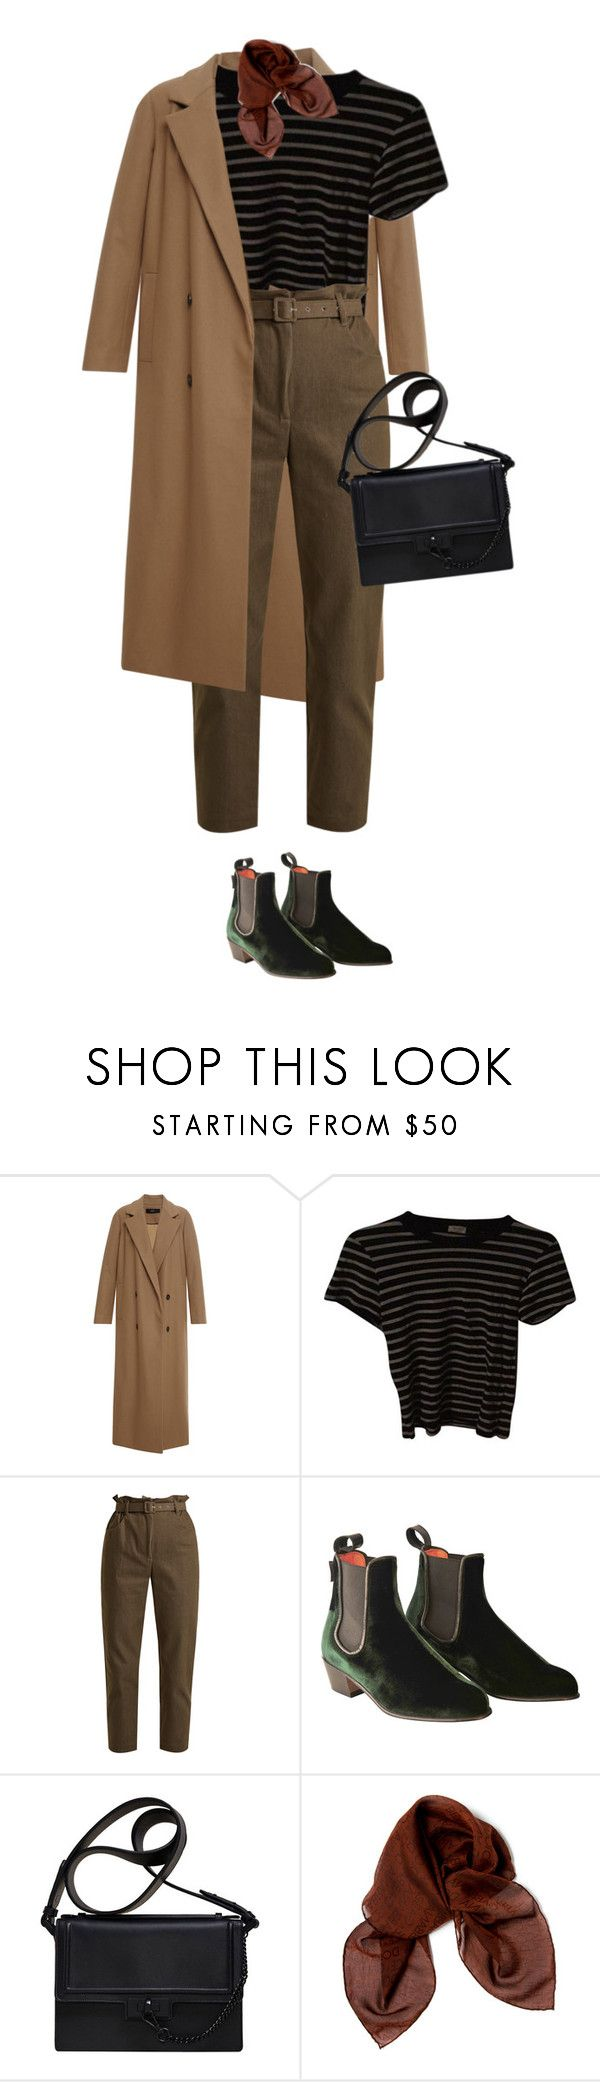 """Untitled #825"" by danceaddict15 ❤ liked on Polyvore featuring TIBI, Brandy Melville, Isa Arfen, Penelope Chilvers, Massimo Dutti, Dolce&Gabbana and vintage"